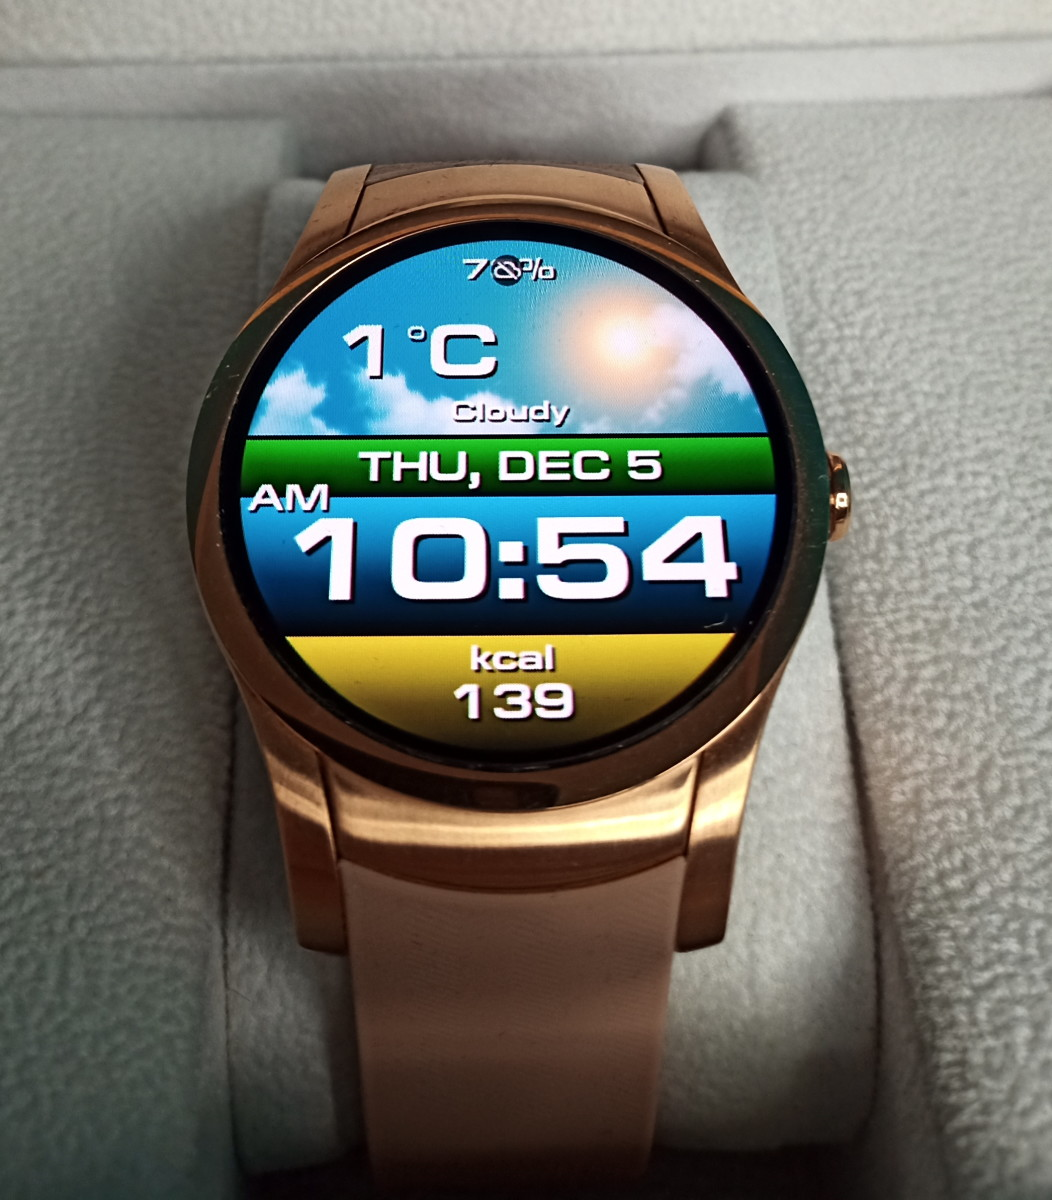 Review of the Wear24 Smartwatch